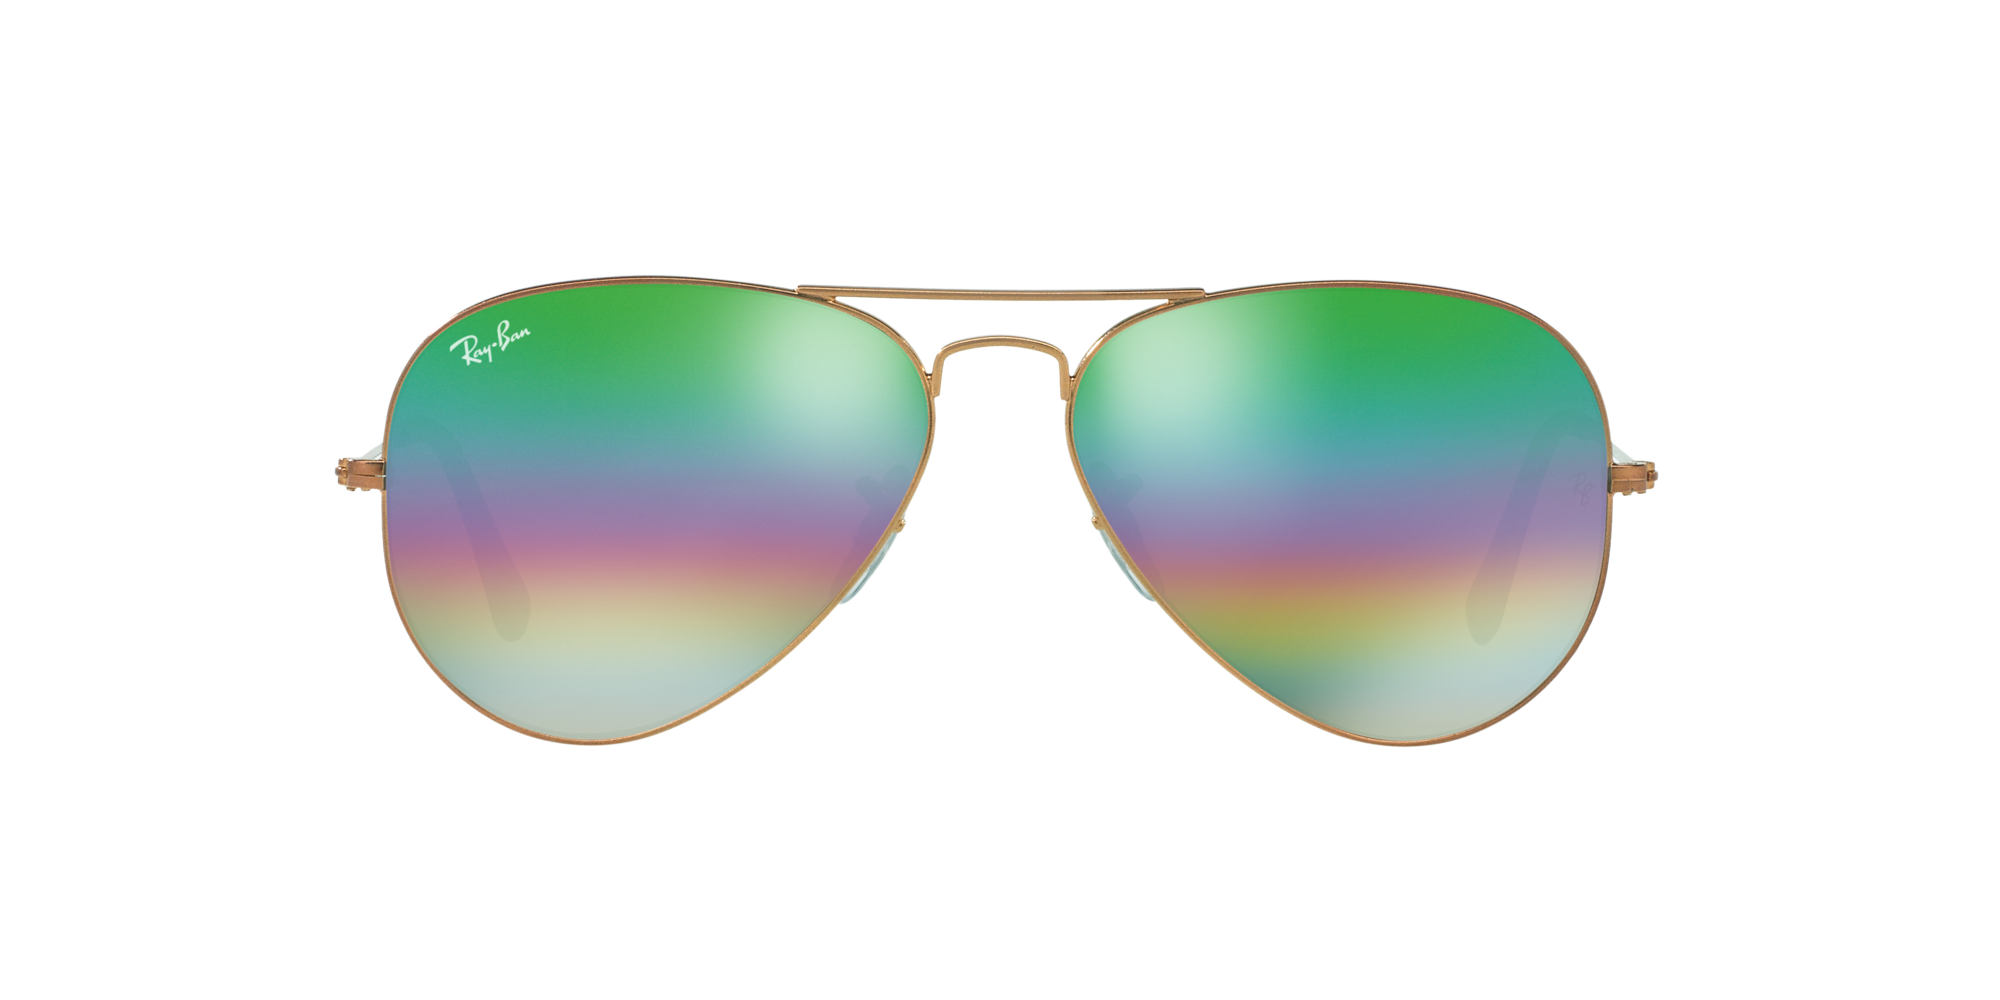 RAY-BAN LARGE AVIATOR RB 3025 9018C3-360